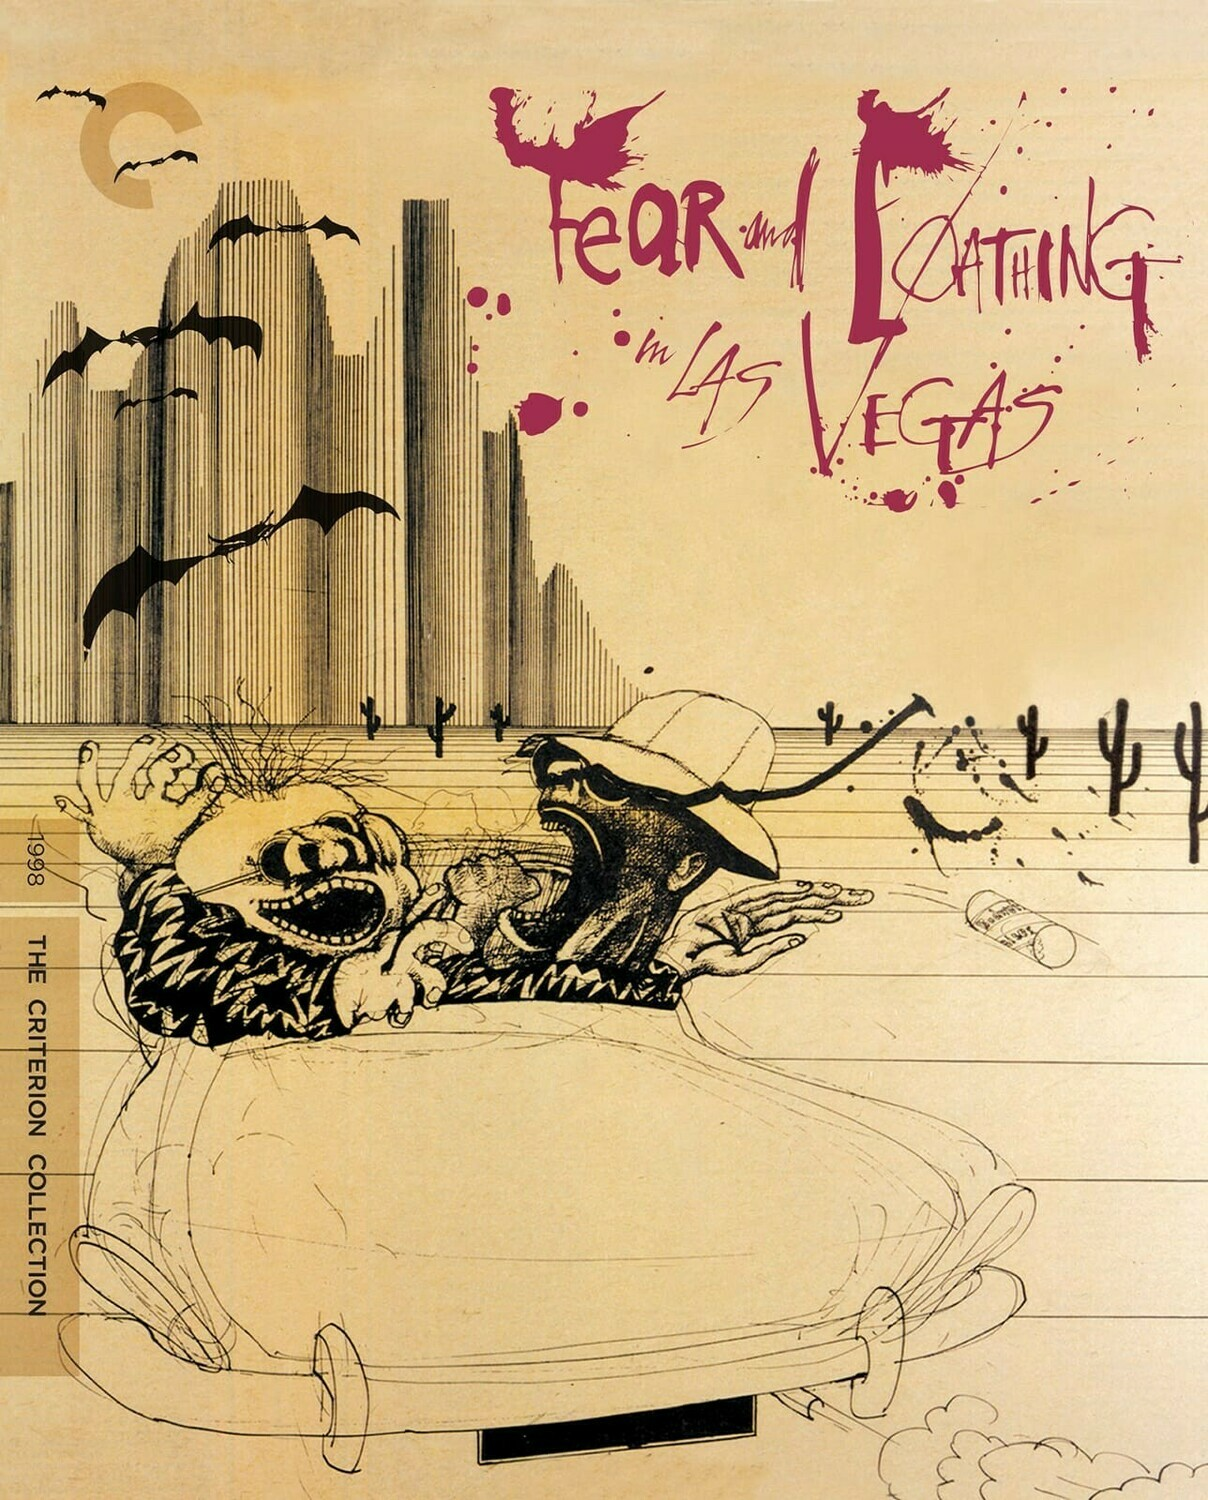 FEAR AND LOATHING IN LAS VEGAS - BLURAY